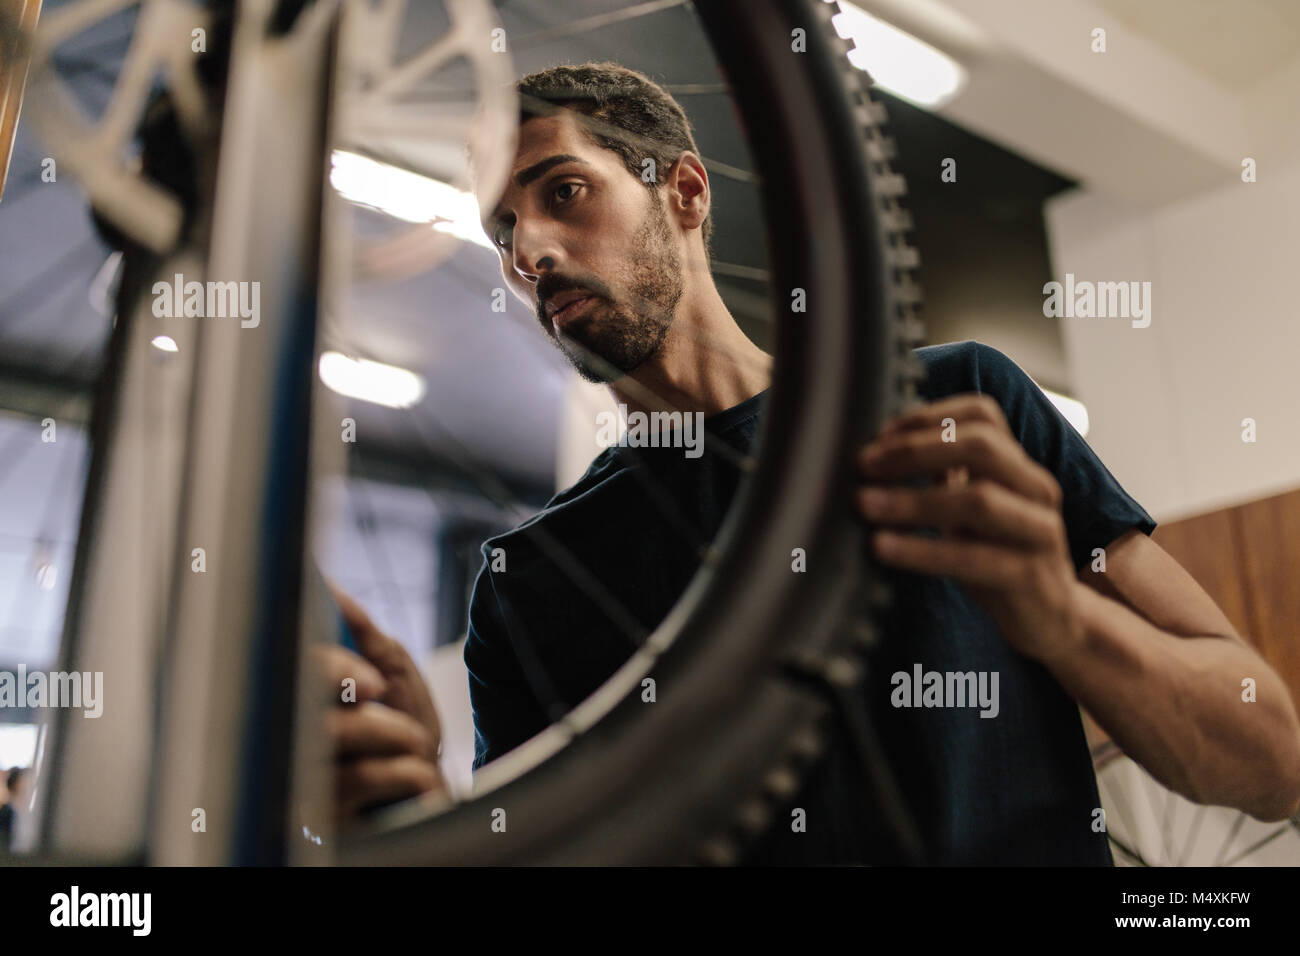 Worker aligning a bicycle wheel in workshop. Man working on a bicycle in a repair shop. - Stock Image